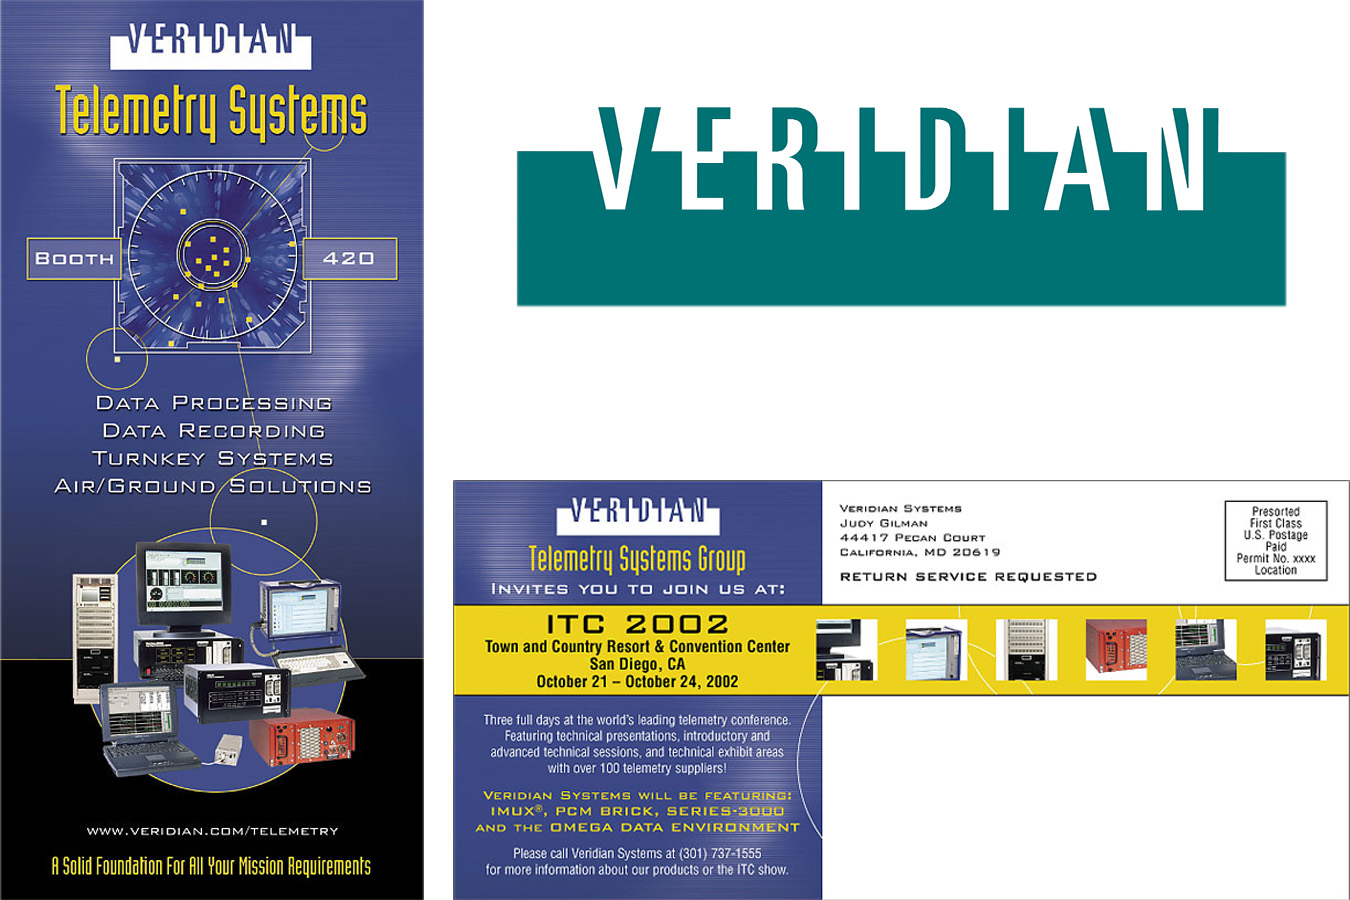 Veridian Postcard : Paris Design provided trade show and collateral services to Veridian more than 10 years